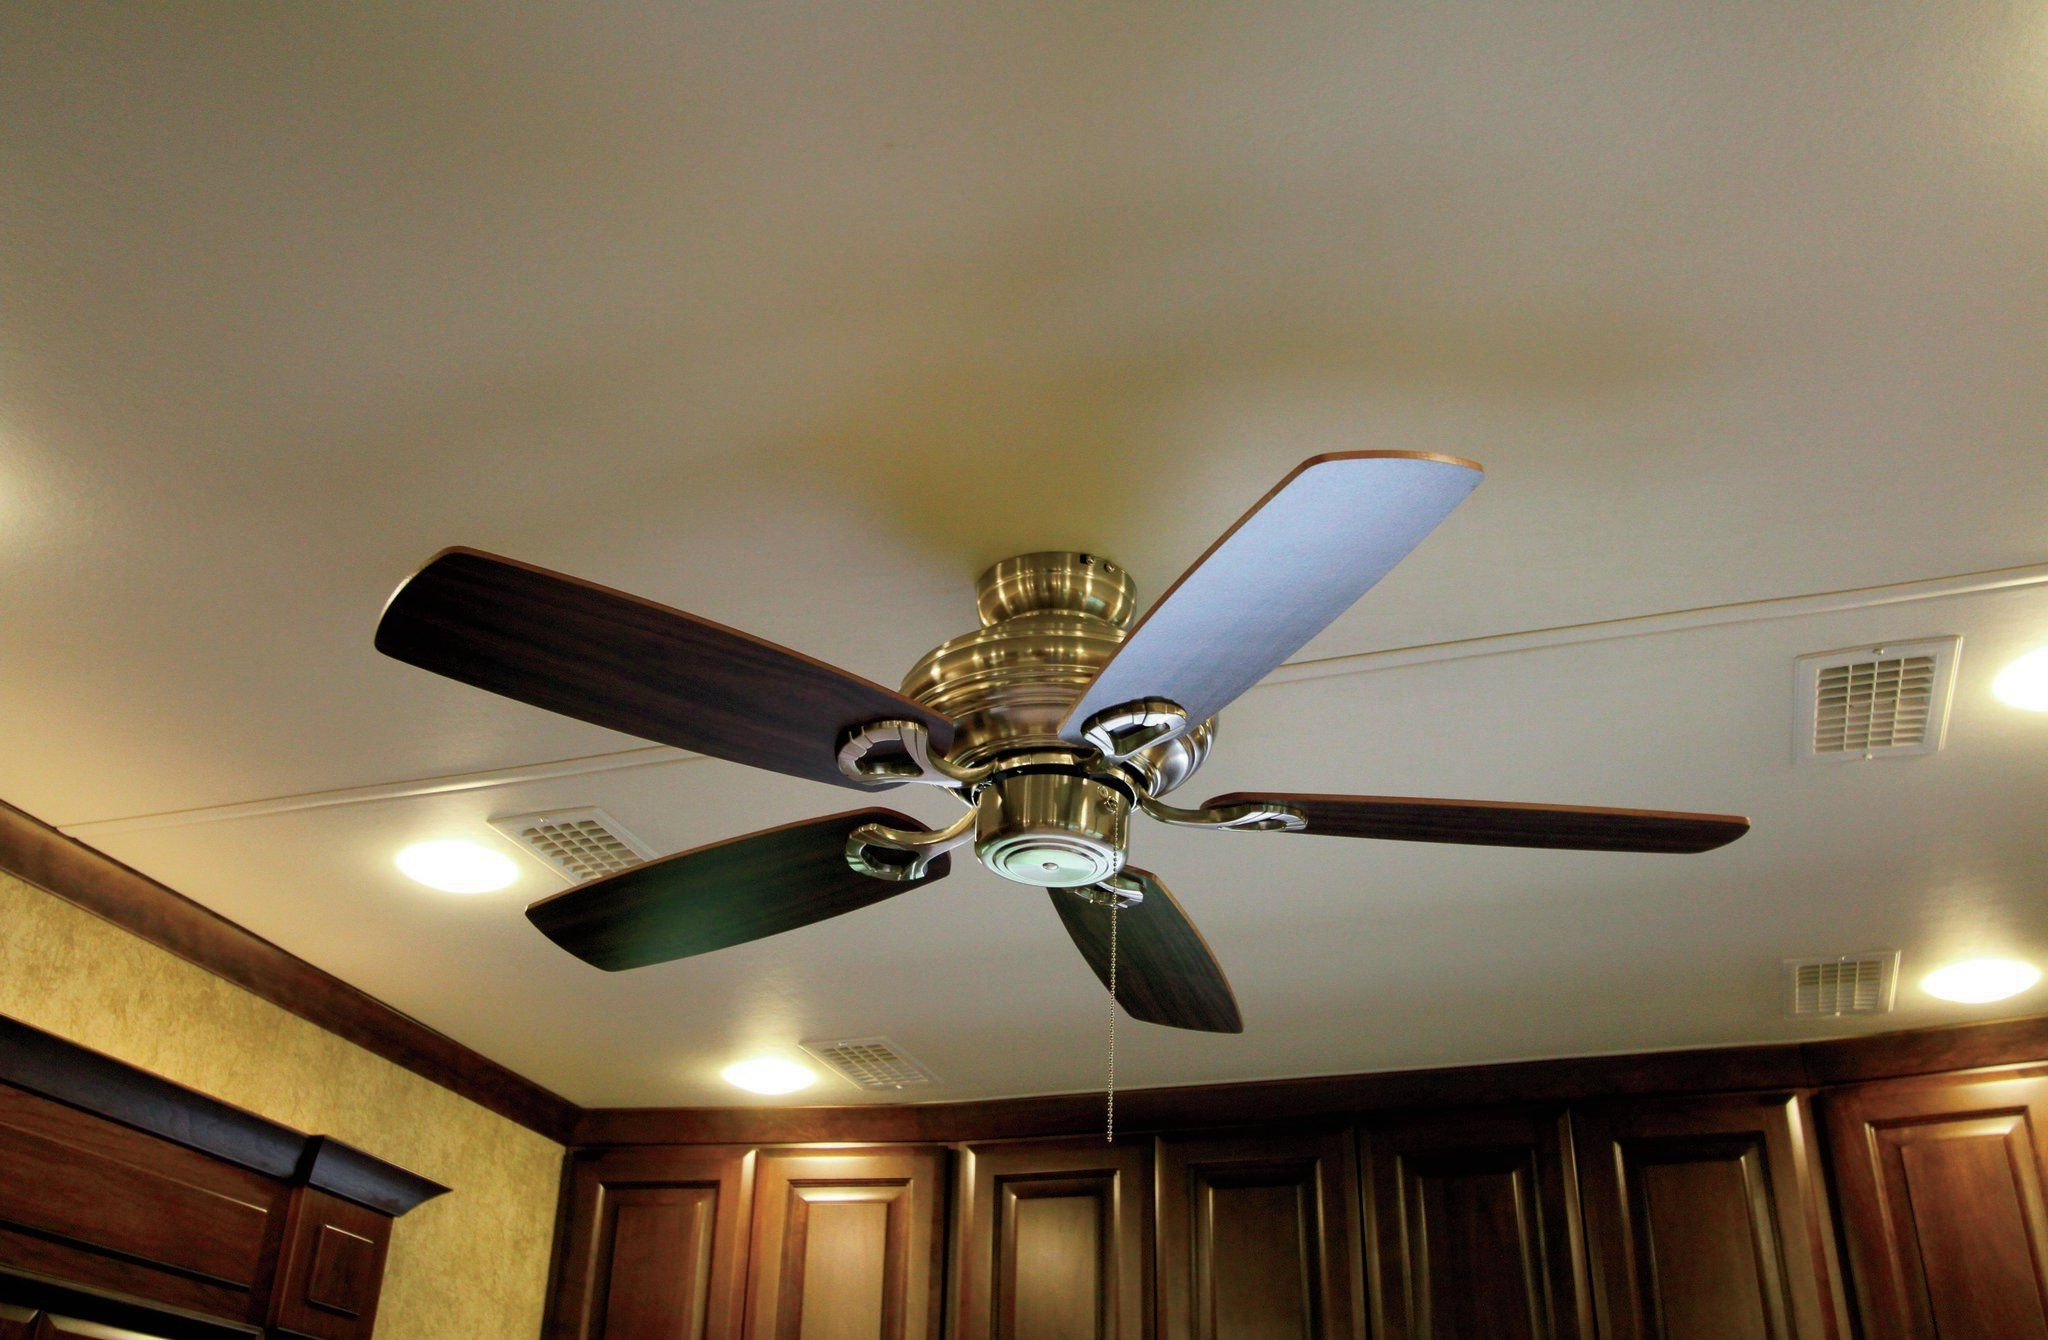 Bedroom Bedroom Ceiling Fans With Remote 44 Inch Outdoor Ceiling With Widely Used 44 Inch Outdoor Ceiling Fans With Lights (View 17 of 20)